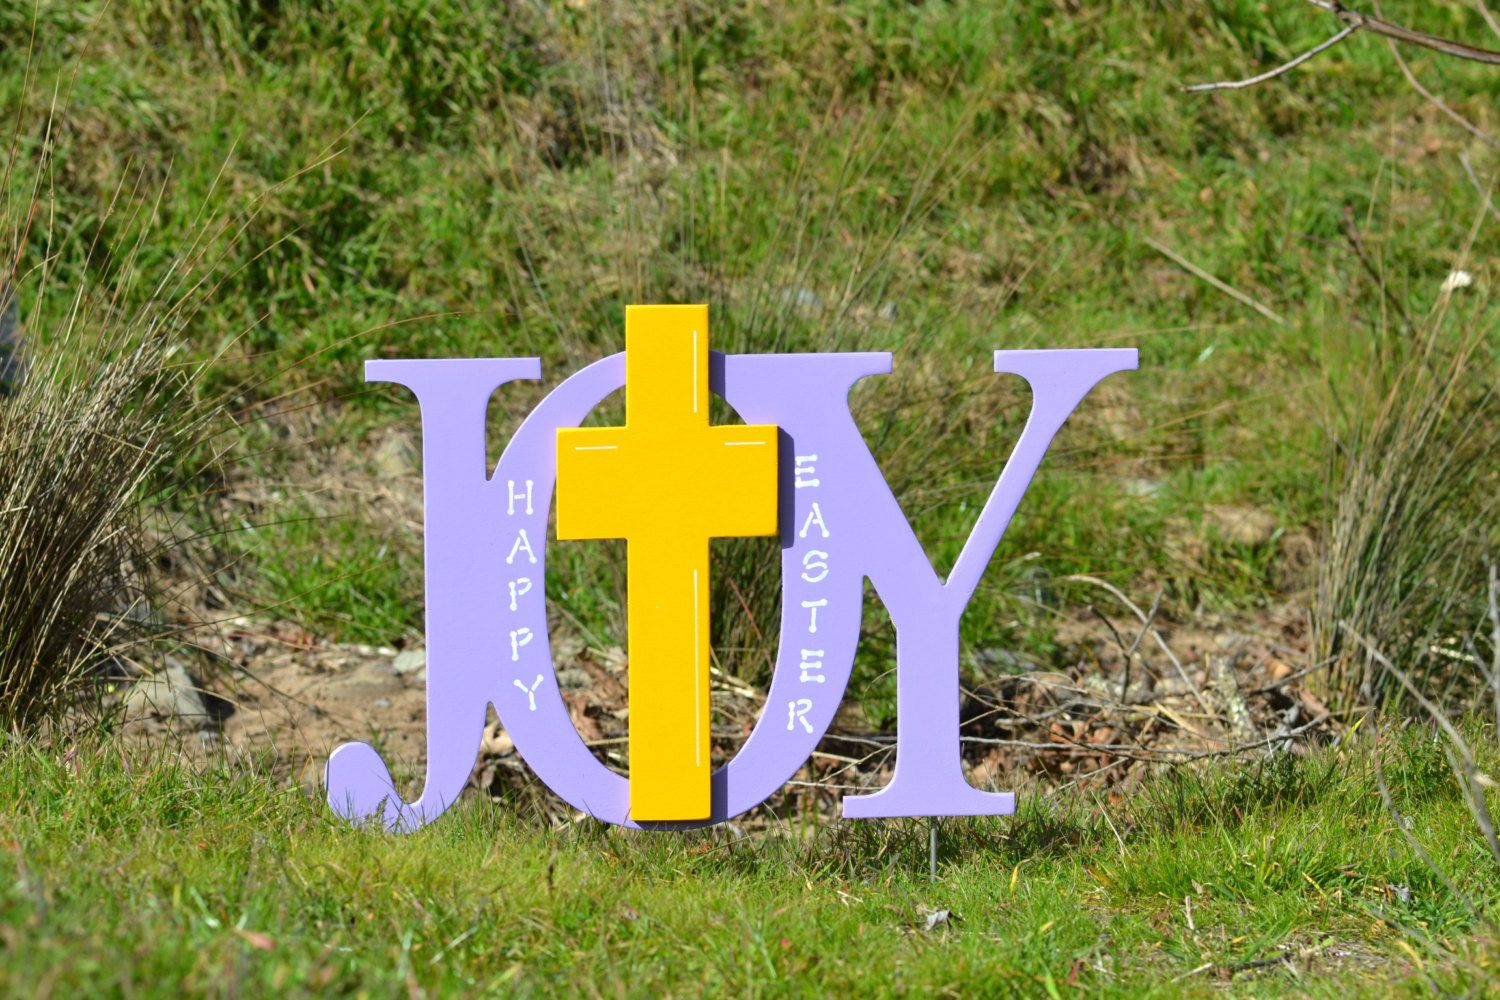 easter outdoor decorations - Google Search | Easter yard ...